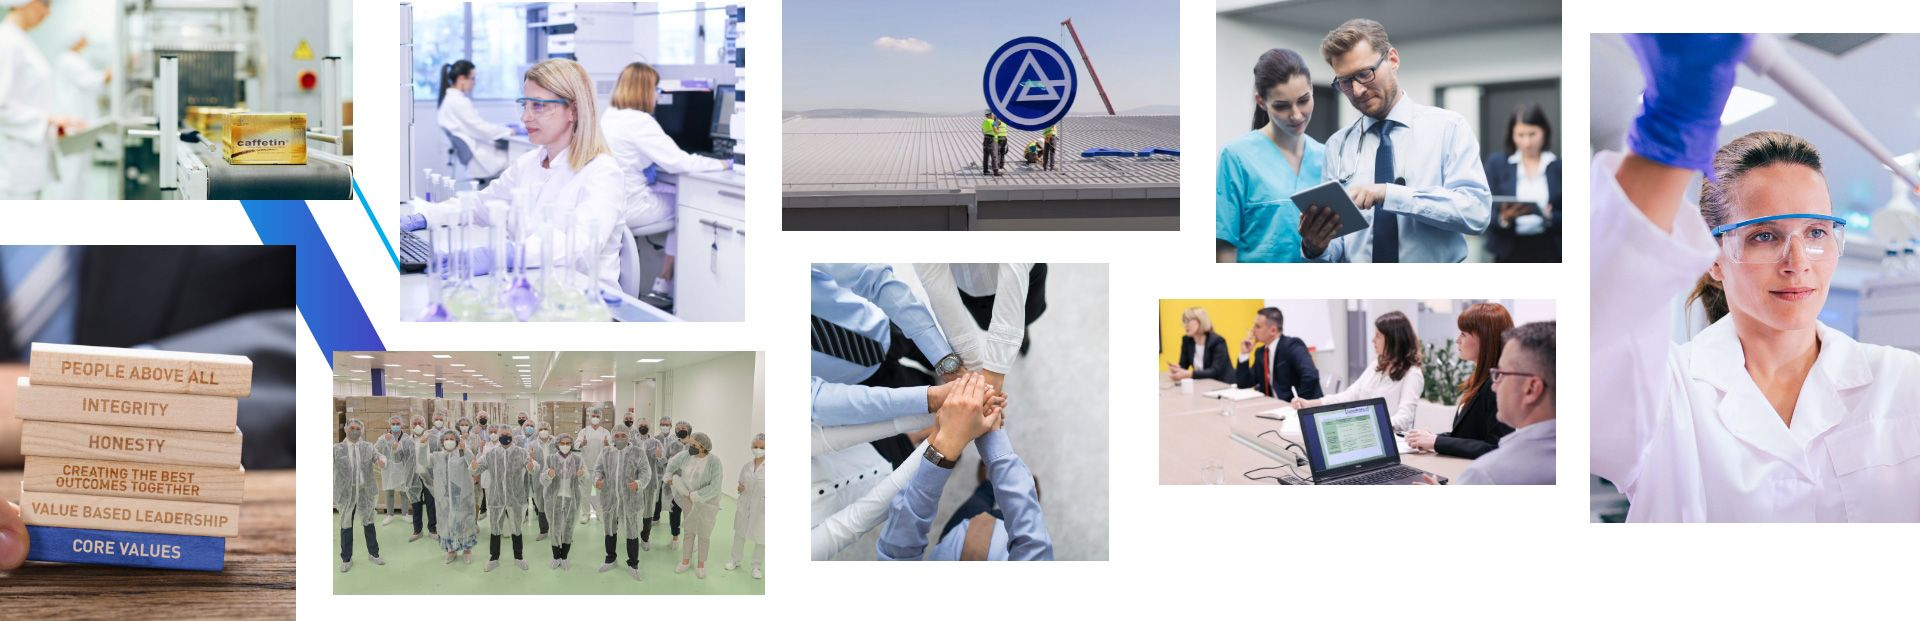 social-responsibility-policy-collage2.jpg